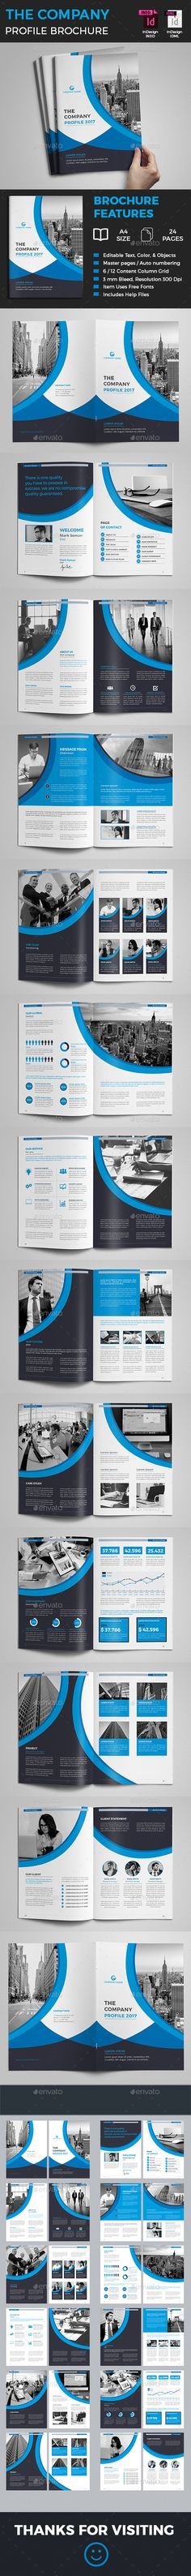 2017 Company Profile Template Cleaning companies, A4 paper and - profile company template